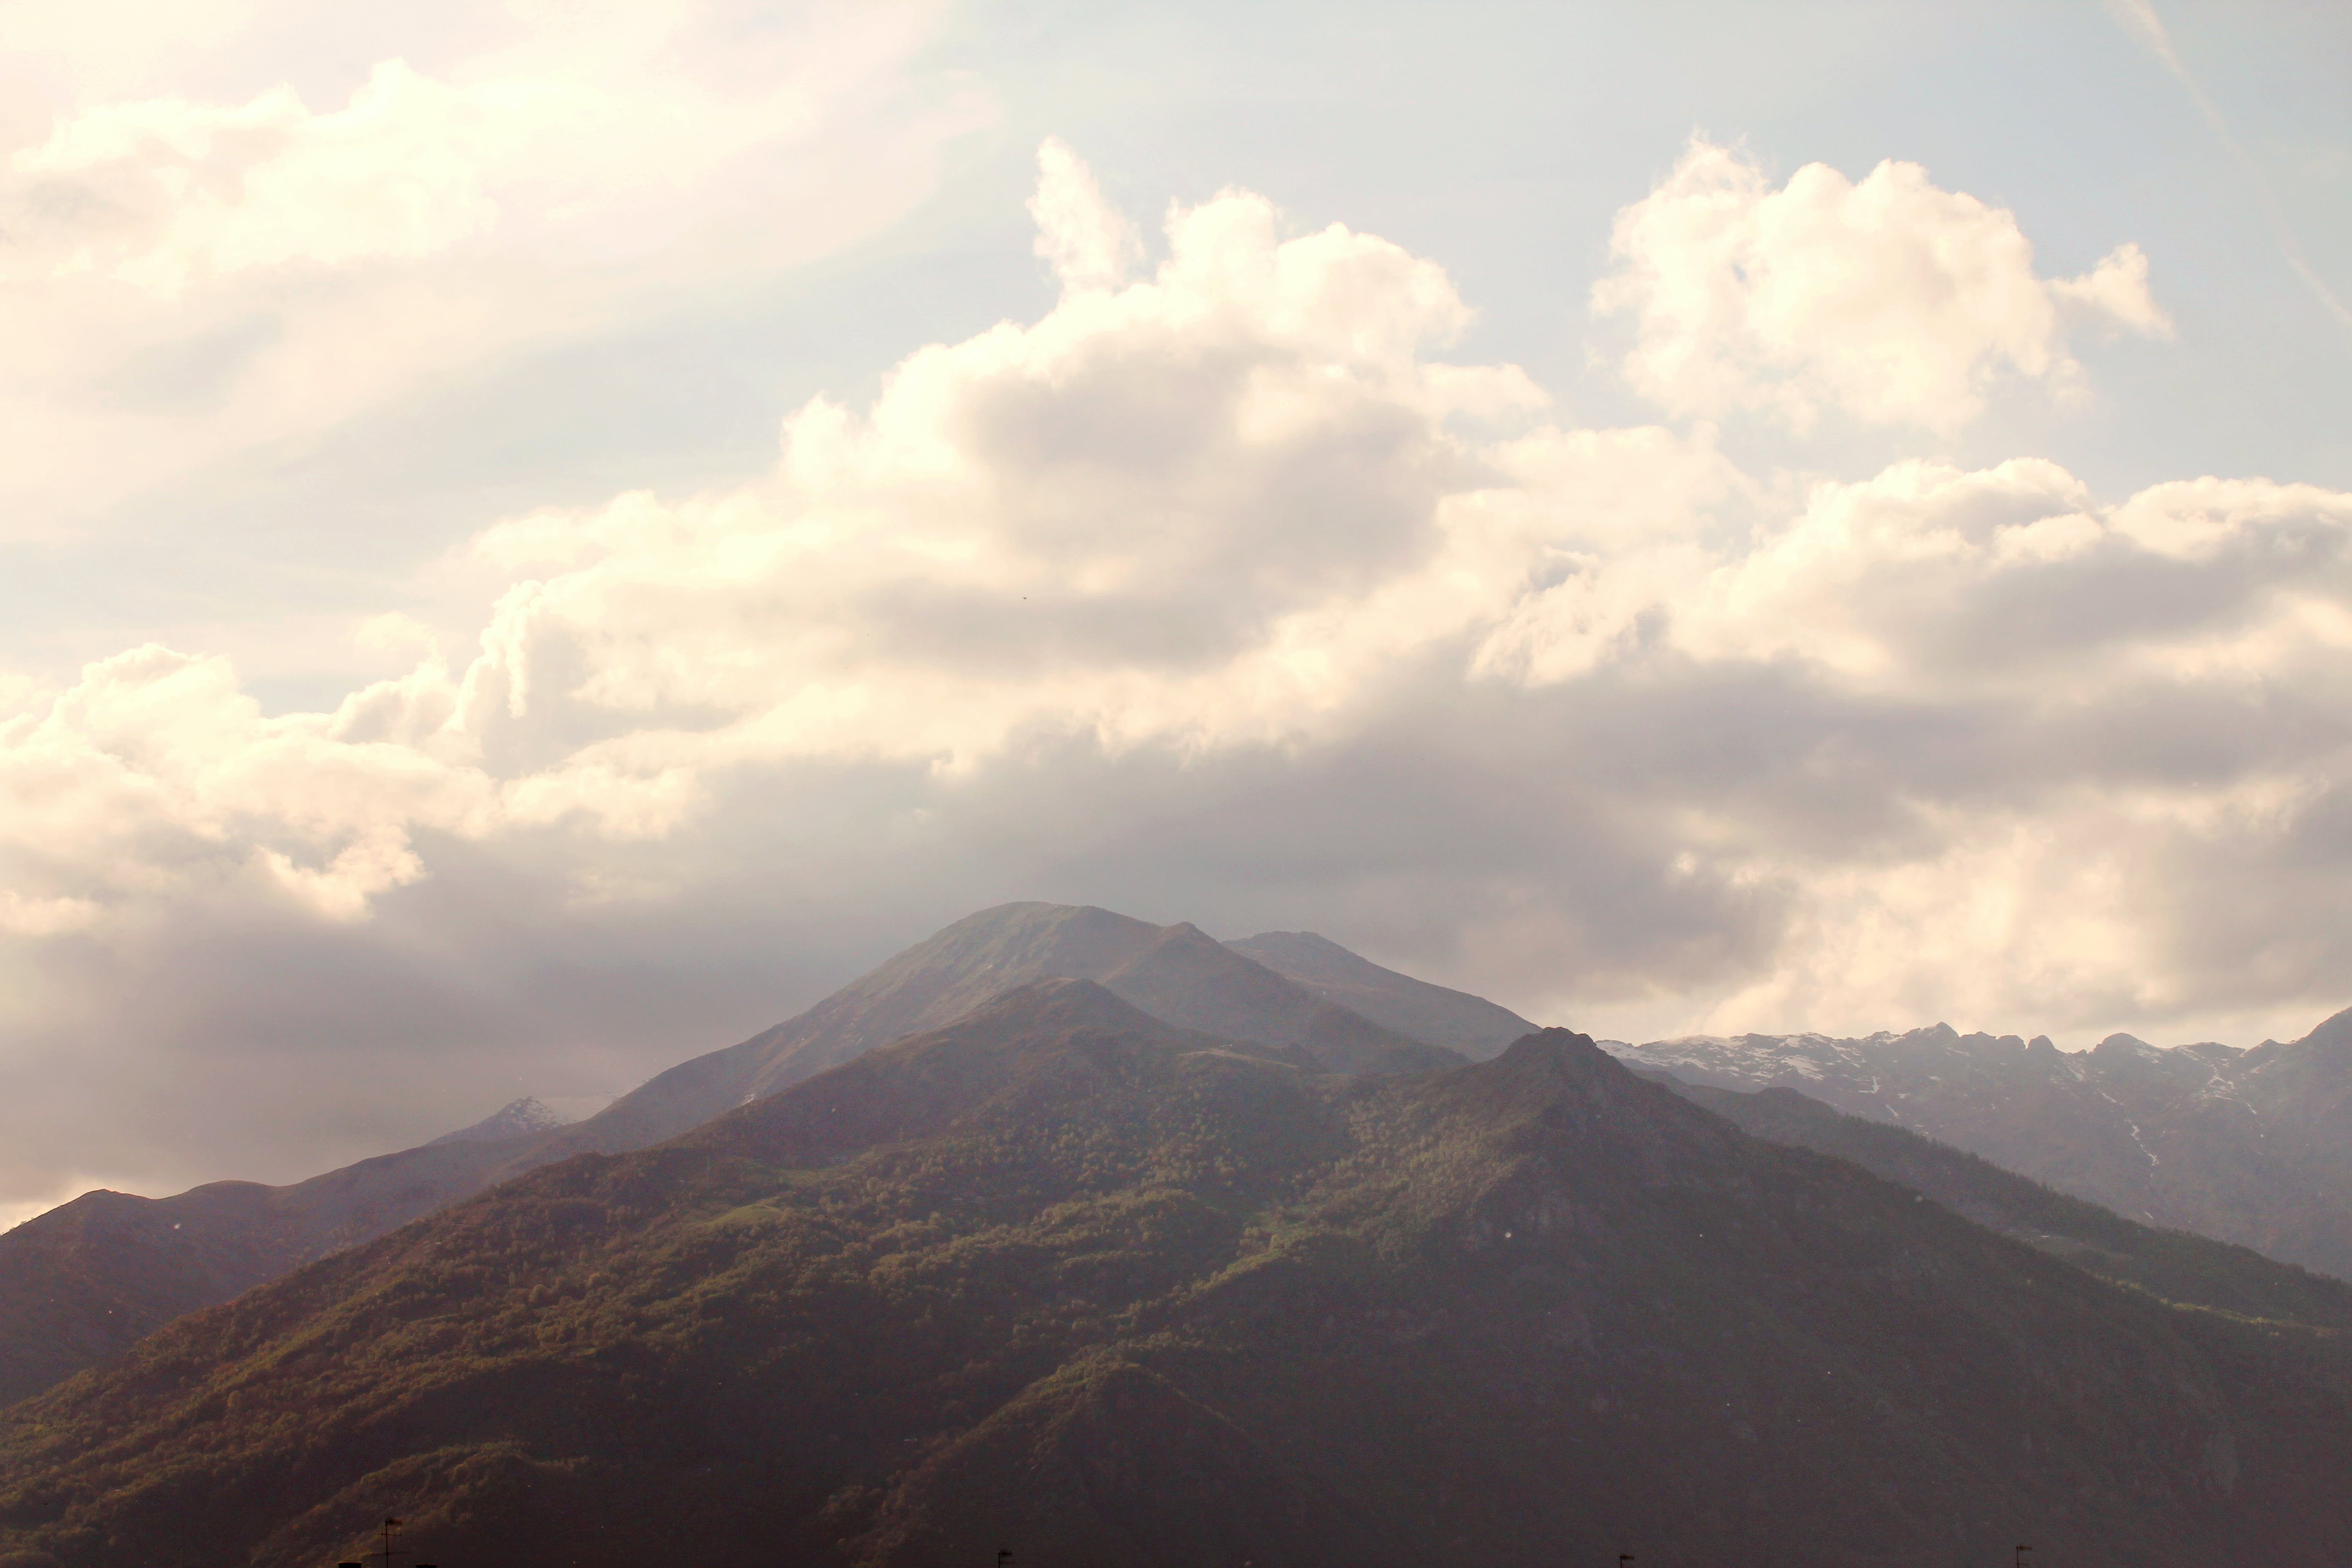 Green and Brown Mountain Peak With White Clouds